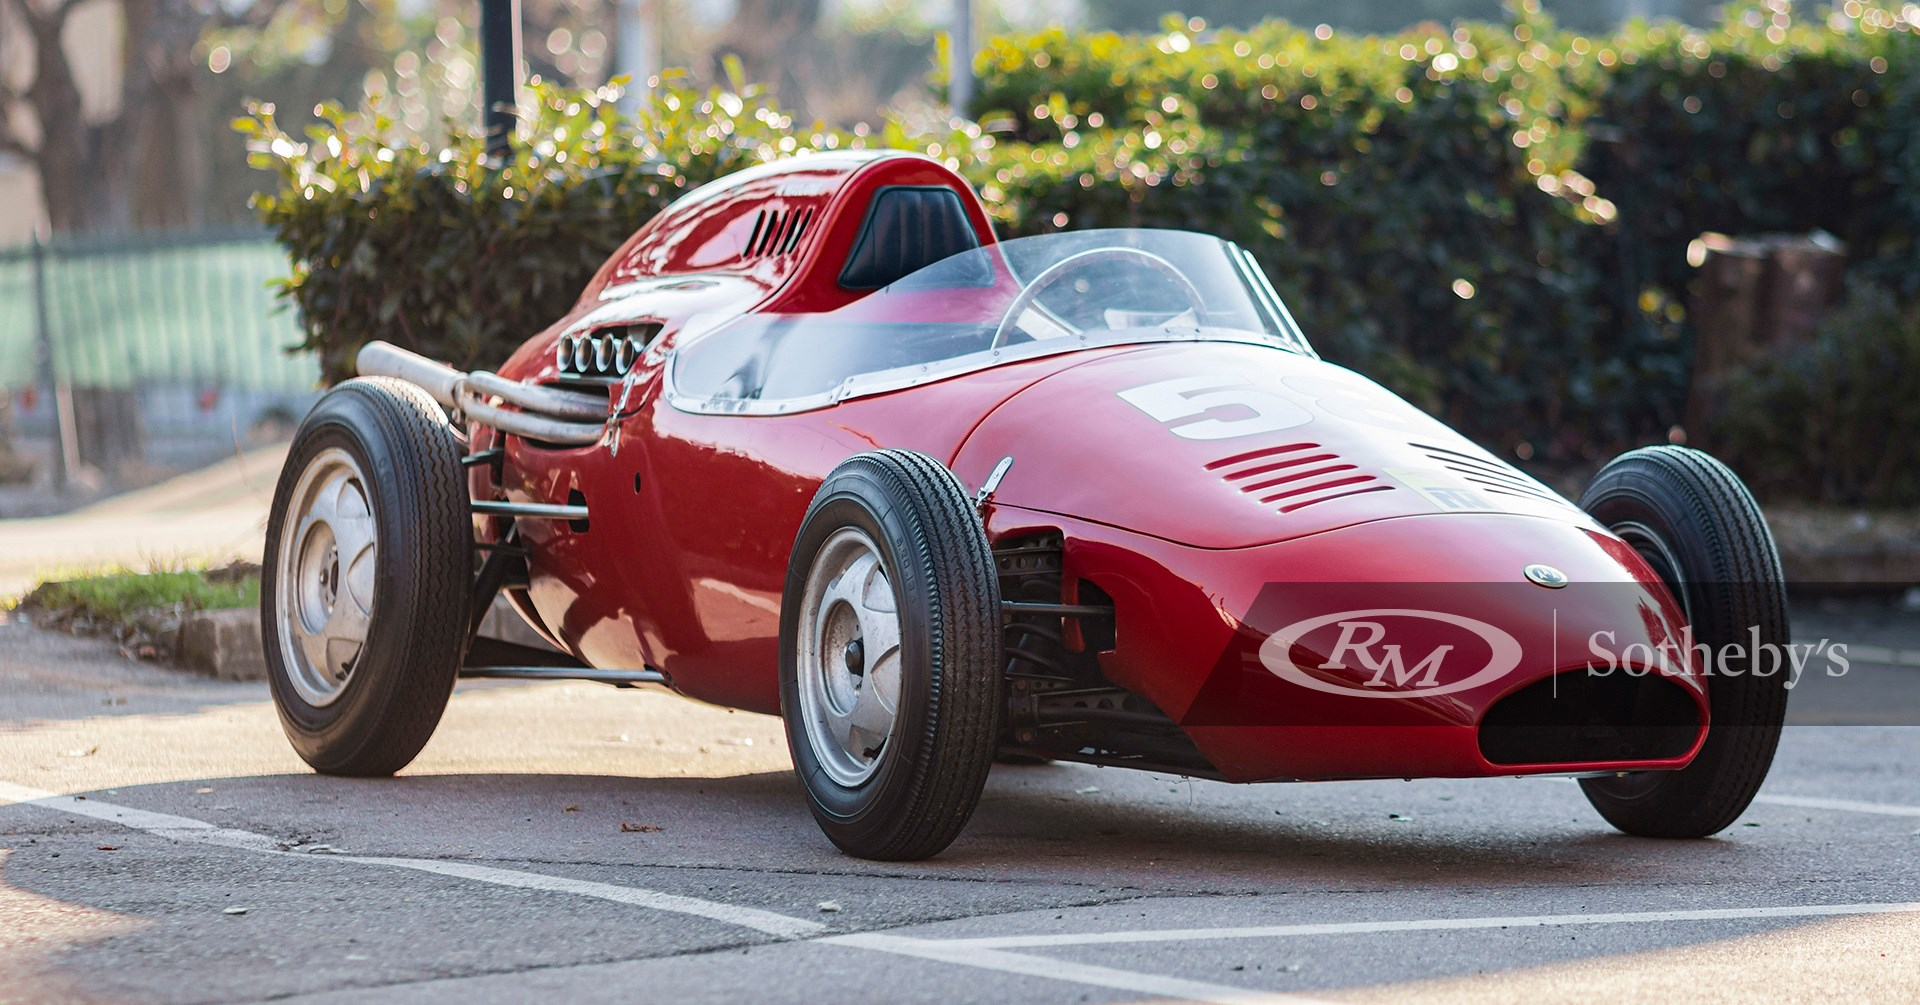 1958 De Sanctis Formula Junior available at RM Sotheby's Online Only Open Roads February Auction 2021